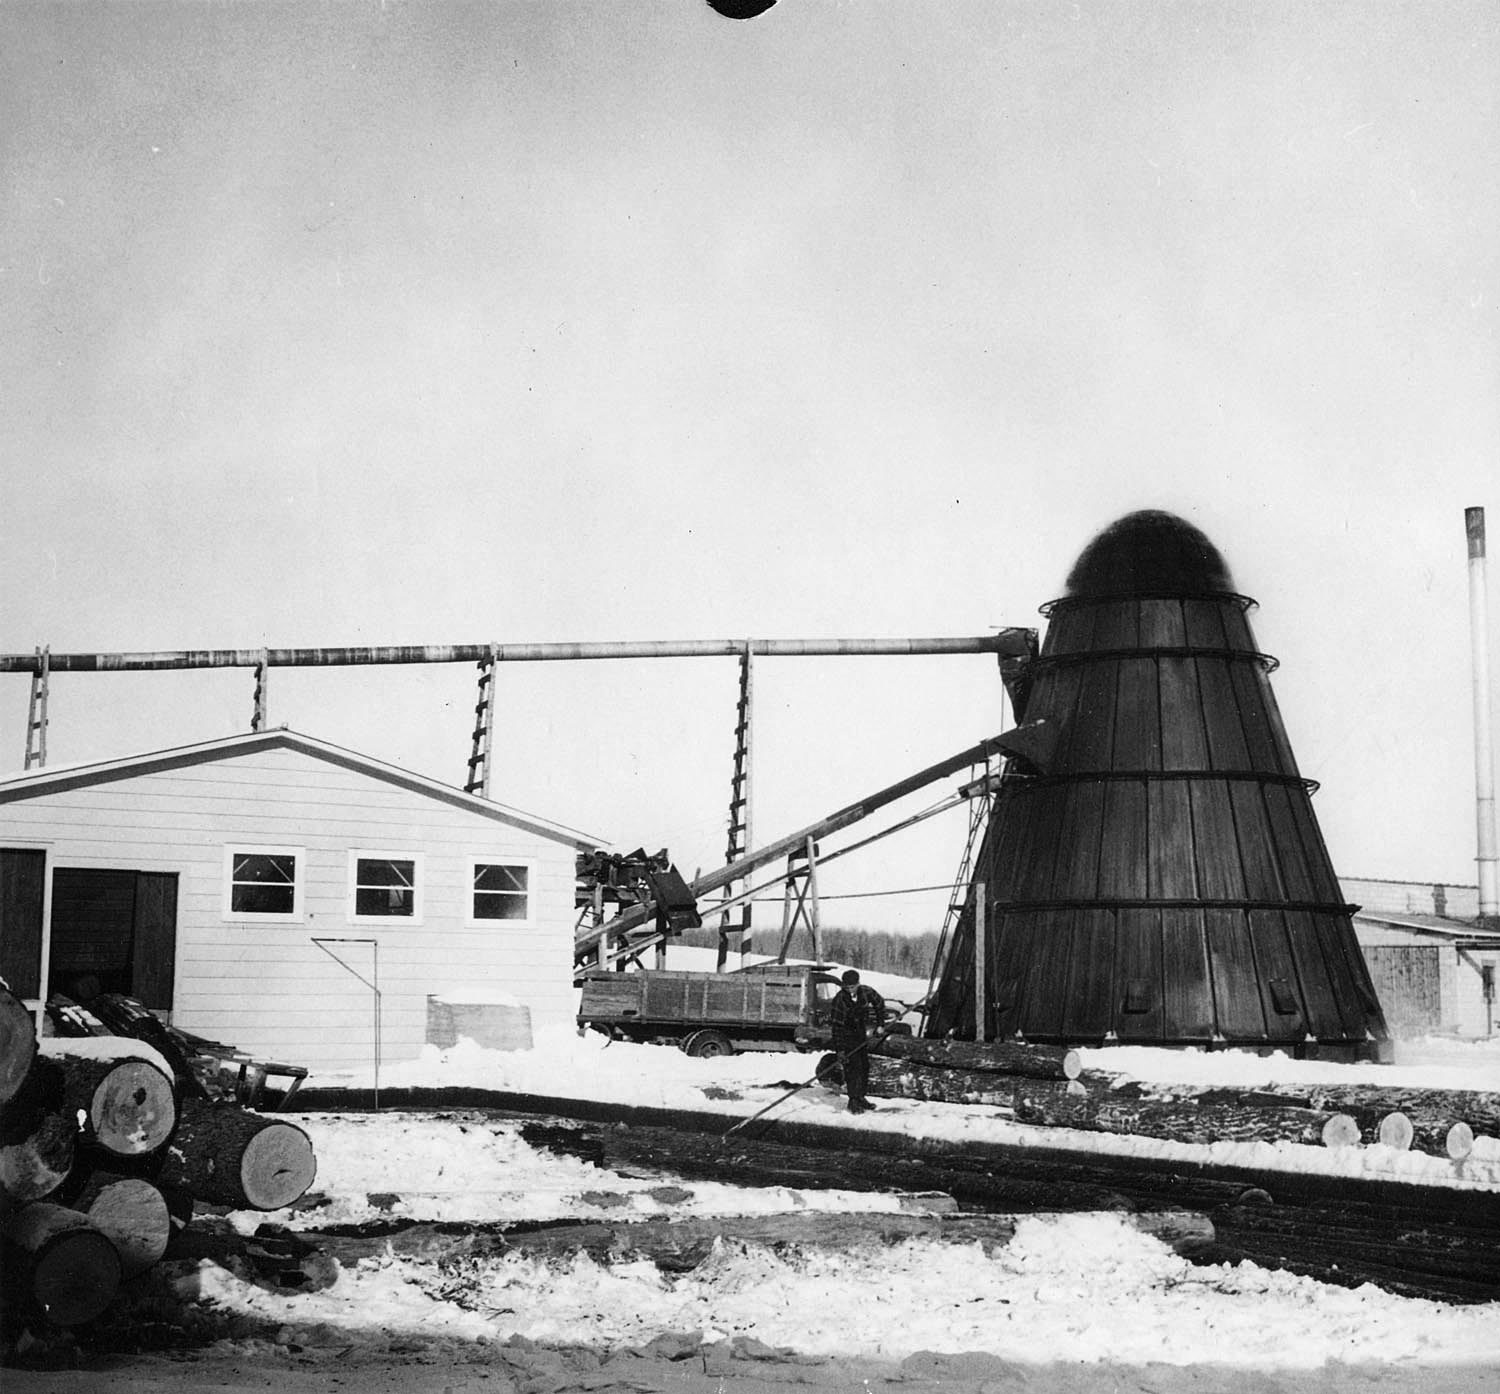 Hot pond, refuse burner and new sawmill housing for the new band saw built at the Pukall Lumber Company mill, Woodruff. Taken in January 1955. Wisconsin Department of Natural Resources photo